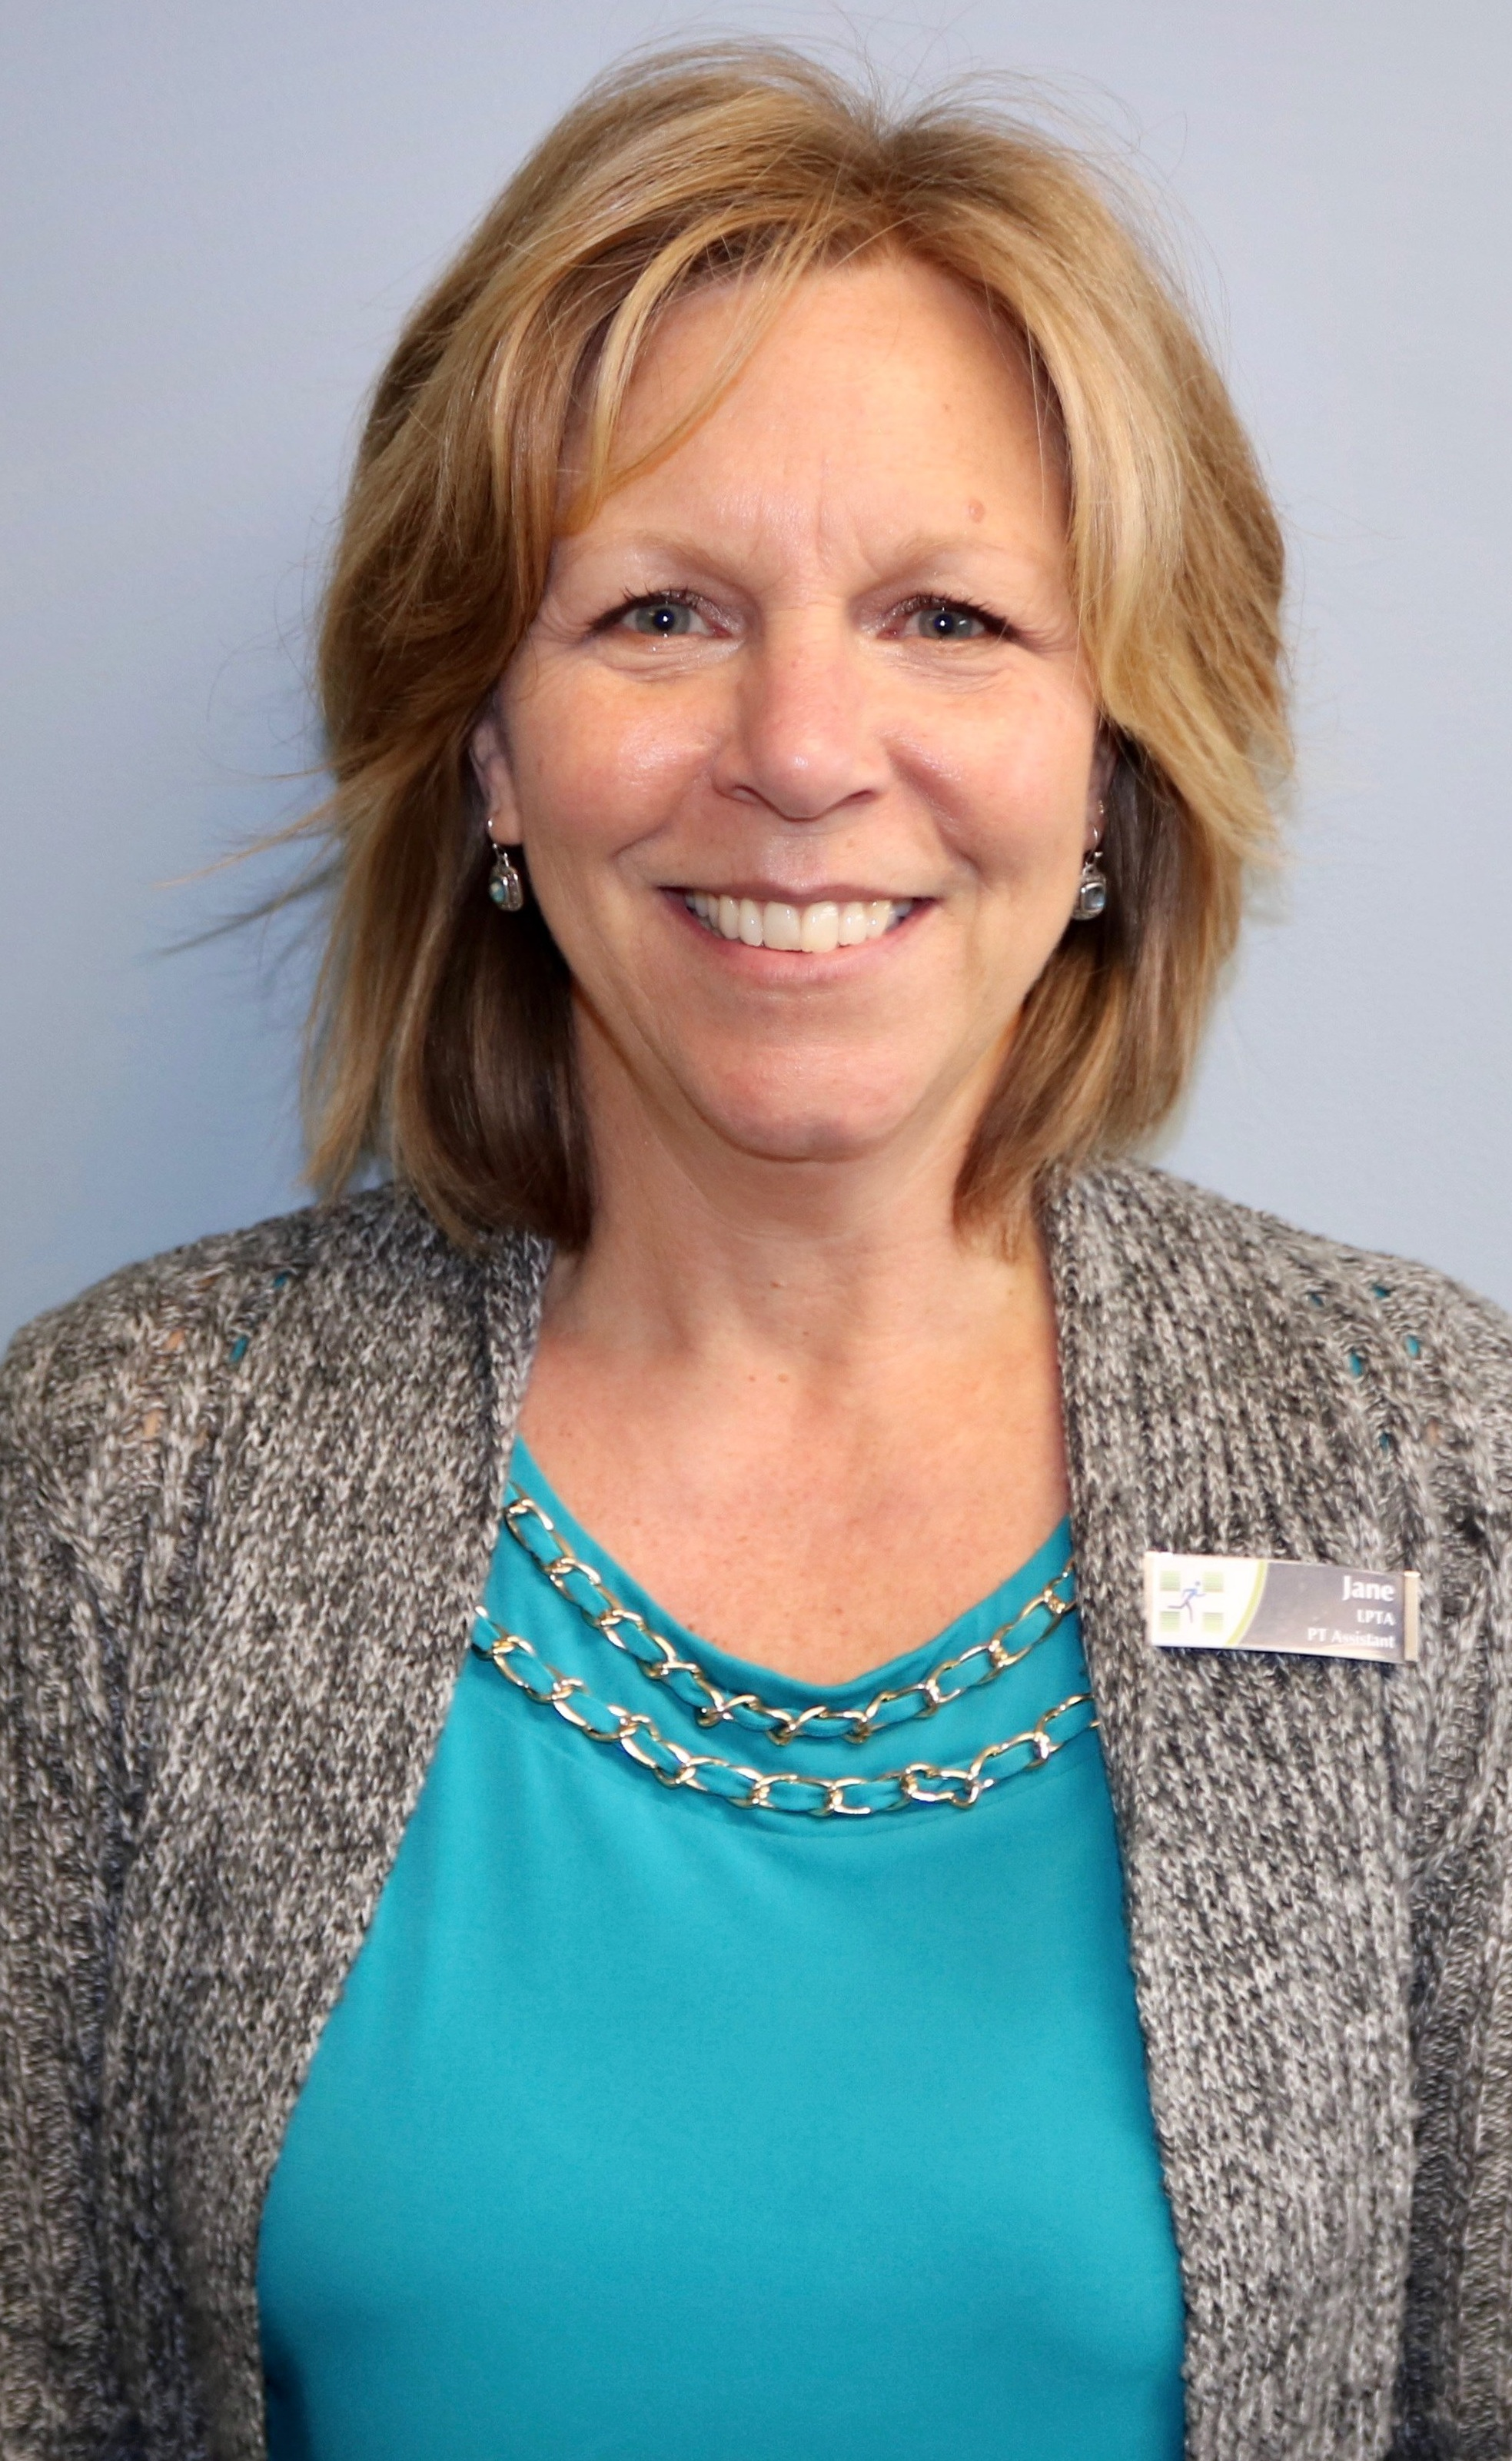 Jane Brooks - PTA  Holt Clinic  Jane graduated from Kellogg Community College with an Associate Degree in Applied Science in 2013 and joined ORS the same year. She is trained in the Graston Technique® as well and various other manual therapy techniques. Jane has over 20 years' experience serving the public while working at the infamous Pennway Coffee Shop. She enjoys boating and fishing at Houghton Lake with her family and children, Sam and Joe.